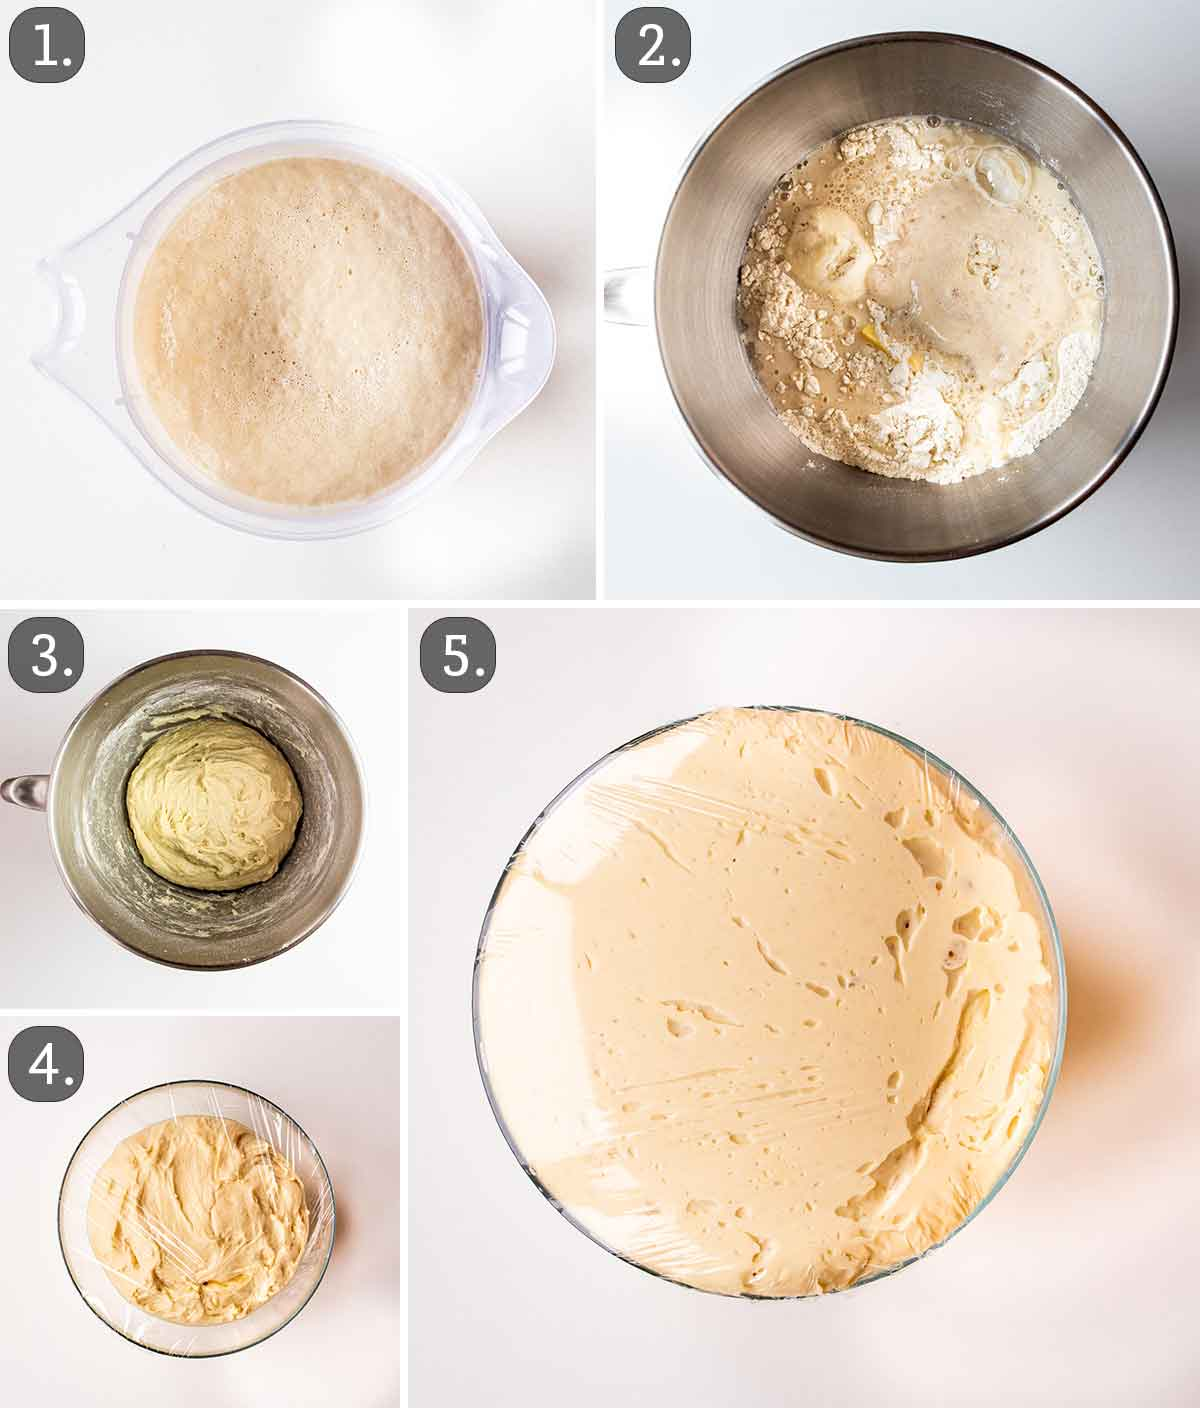 process shots showing how to make dough for breadsticks.